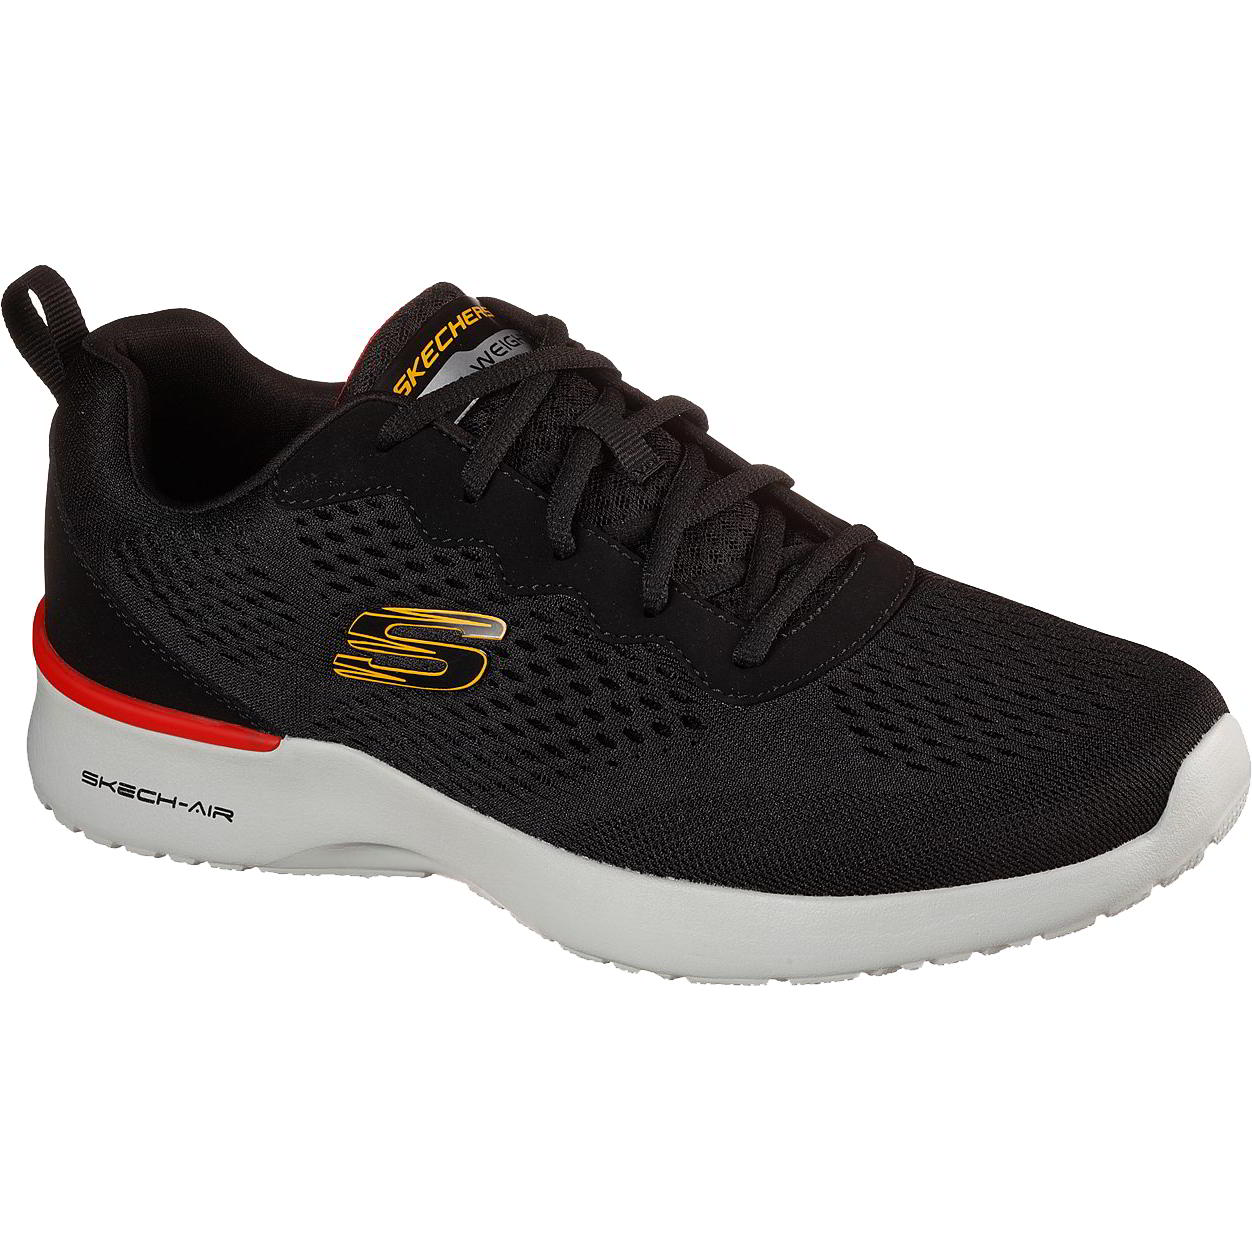 Skechers Mens Air Dynamight Trainers - Black